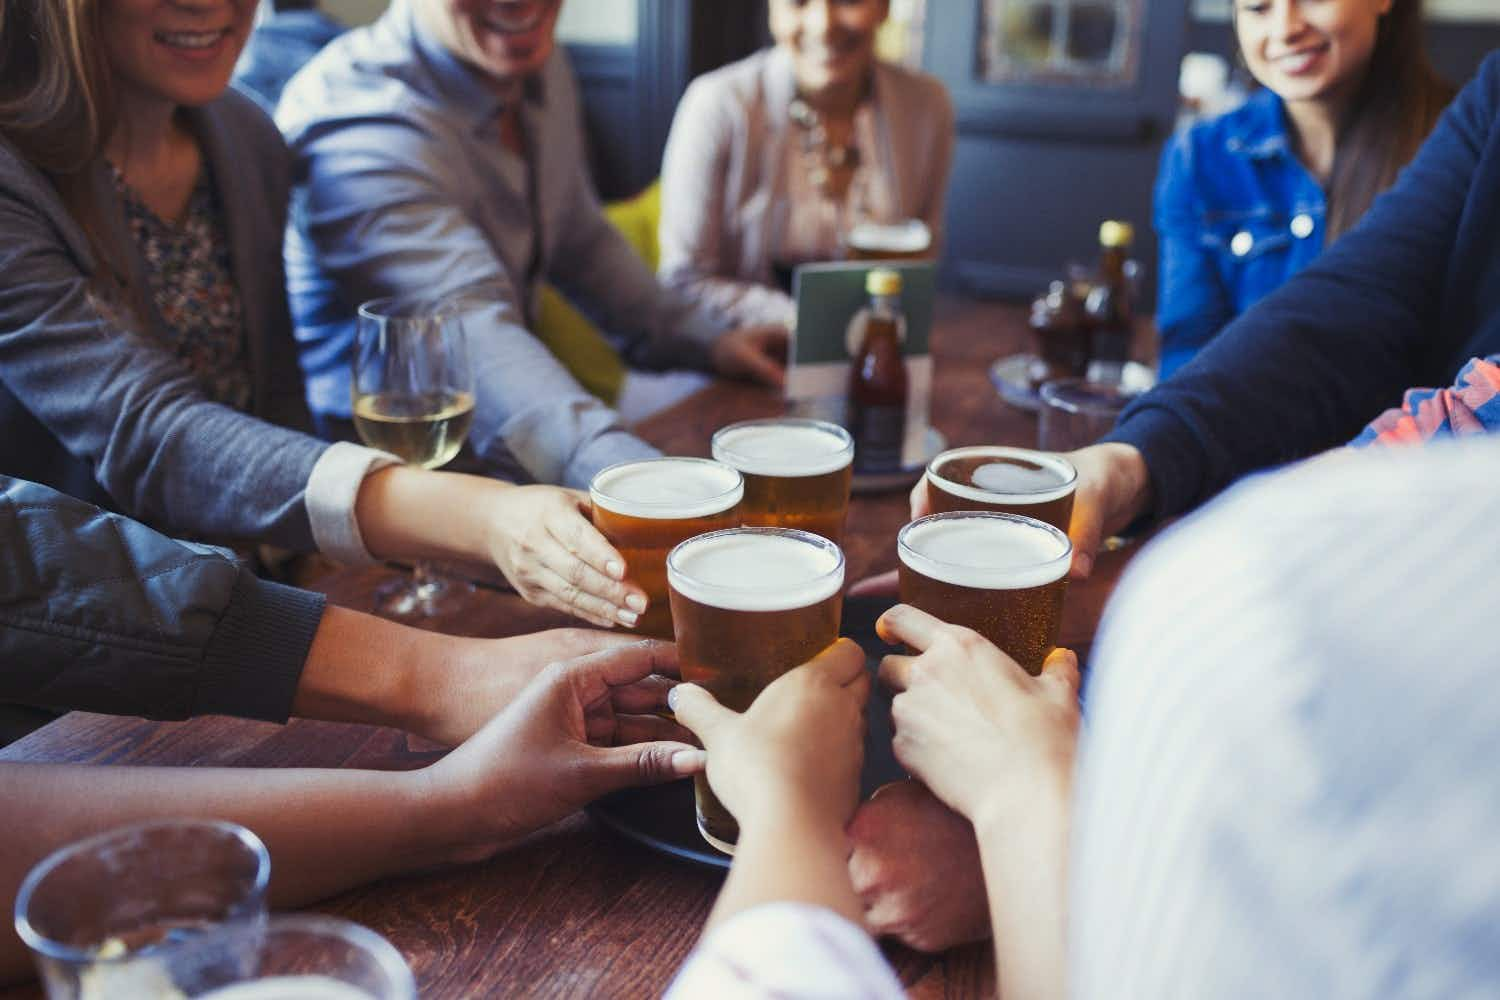 It's going to be Skál all day long as Iceland celebrates its national Beer Day